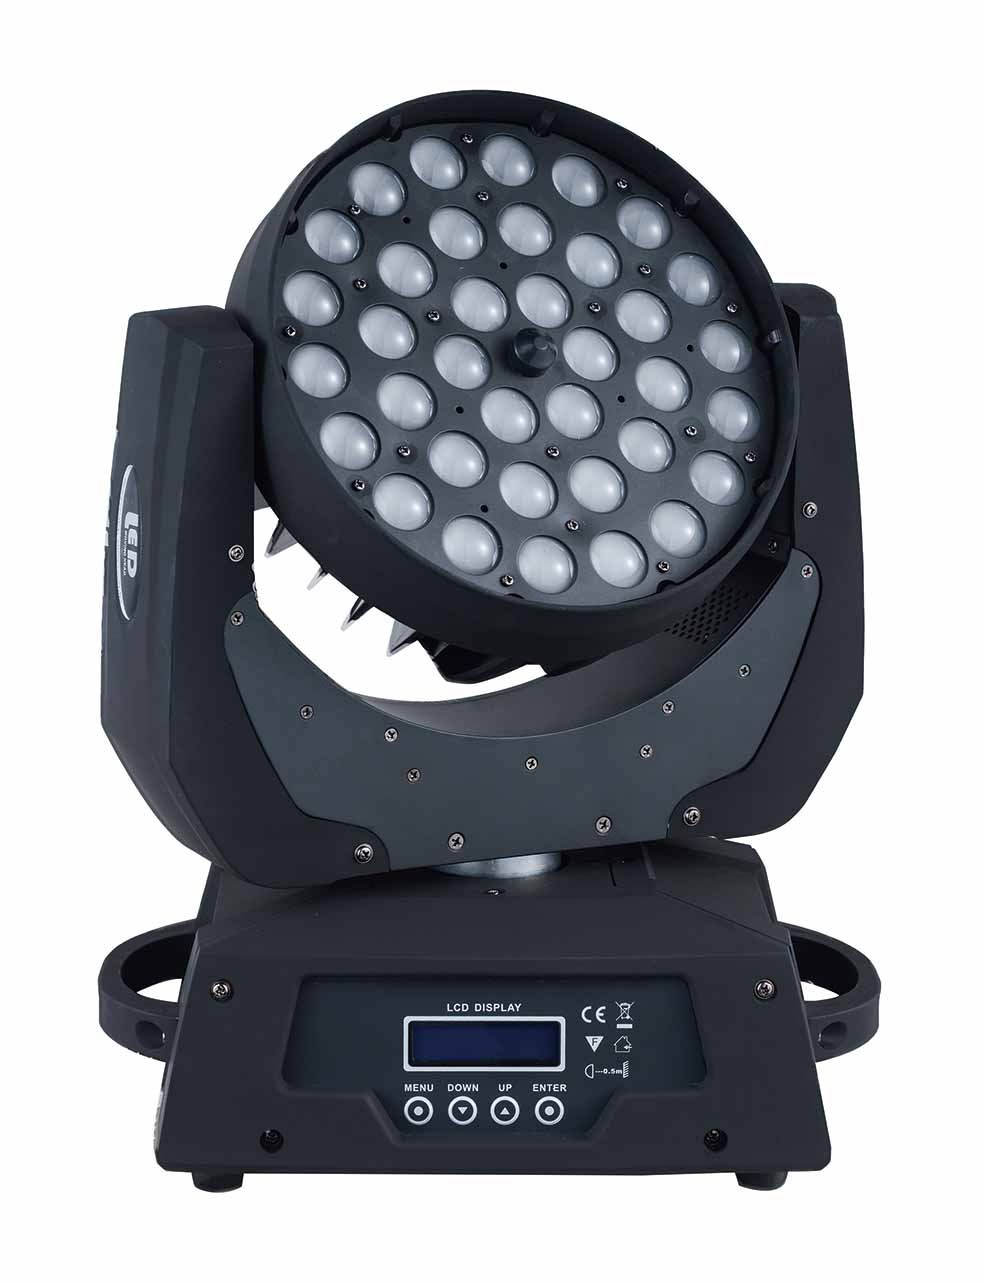 10pcs/lot China market rgbw zoom 36x10w 4in1 led moving head wash dmx stage light Commercial Lighting for dj bar colorful effect